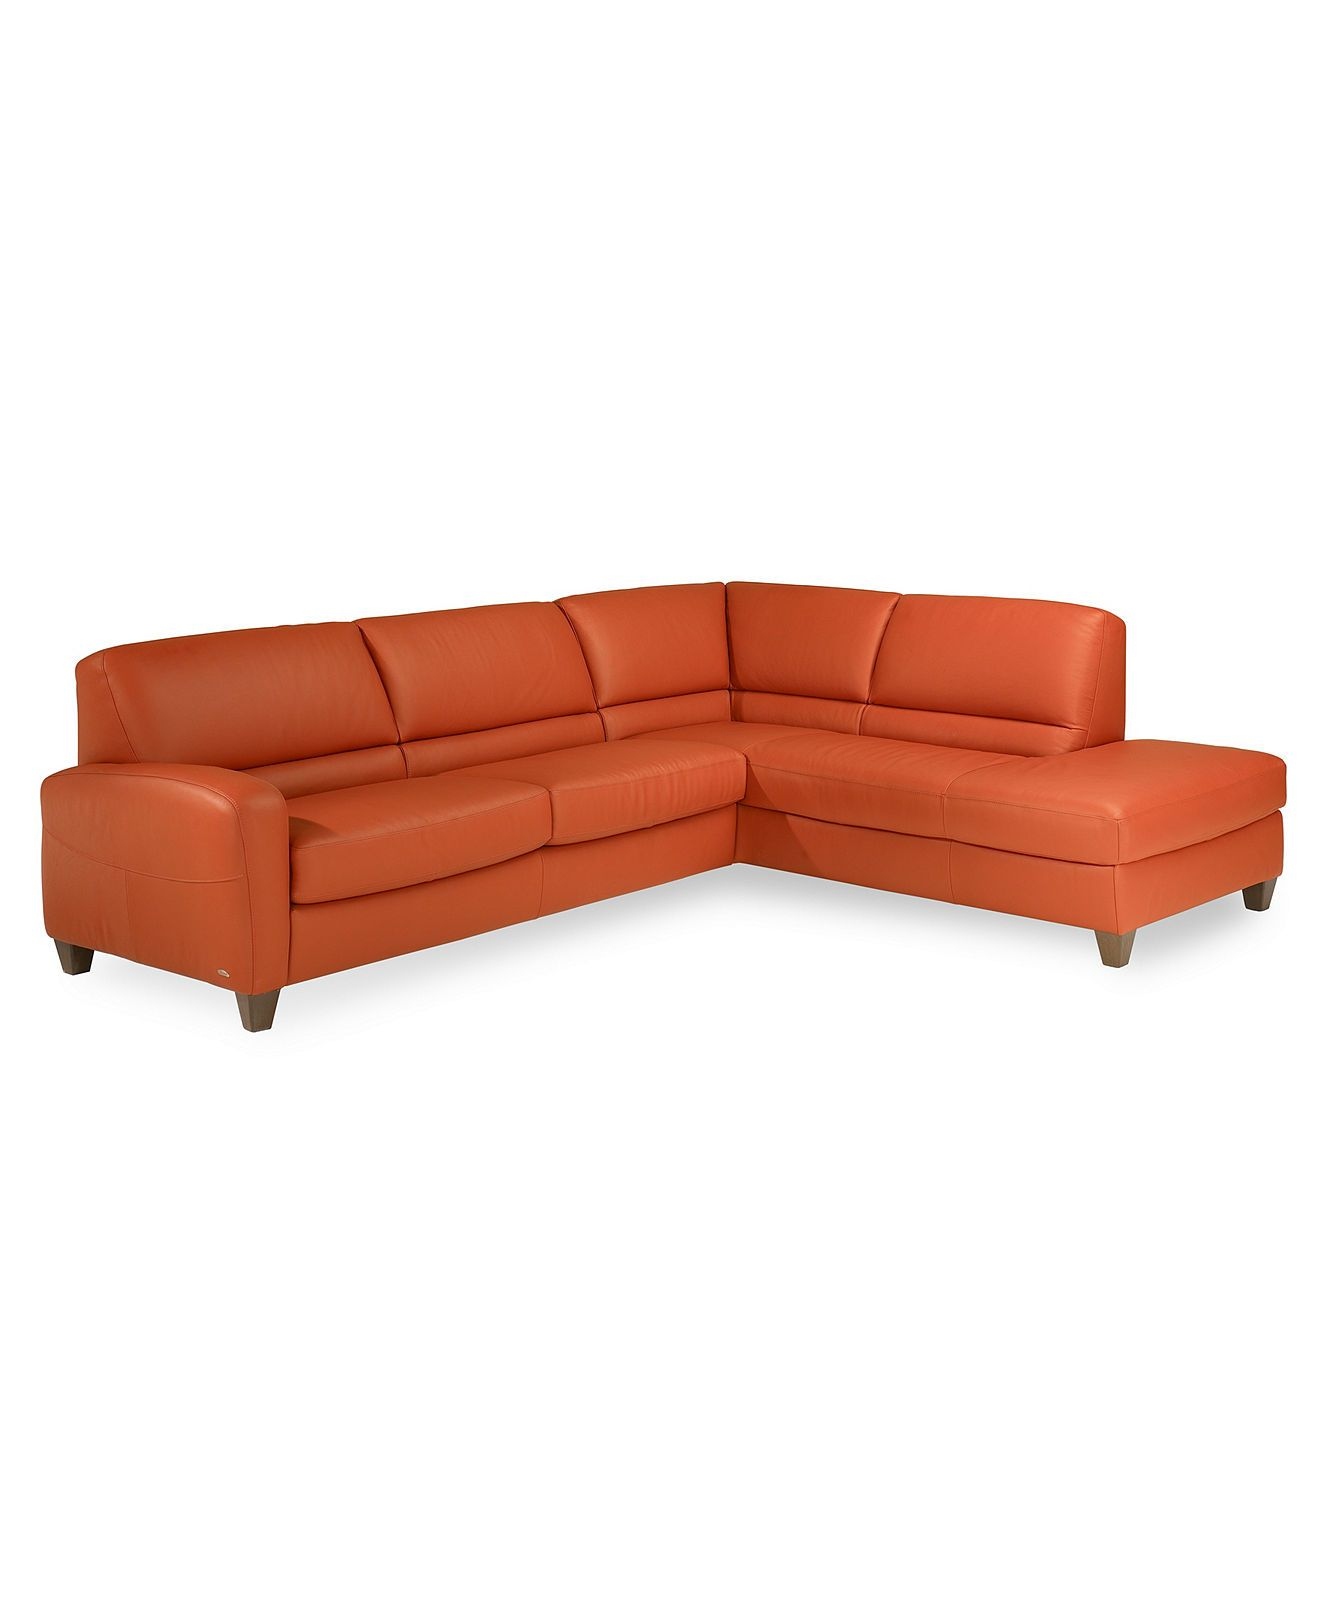 Leather Sectional Sleeper Sofa